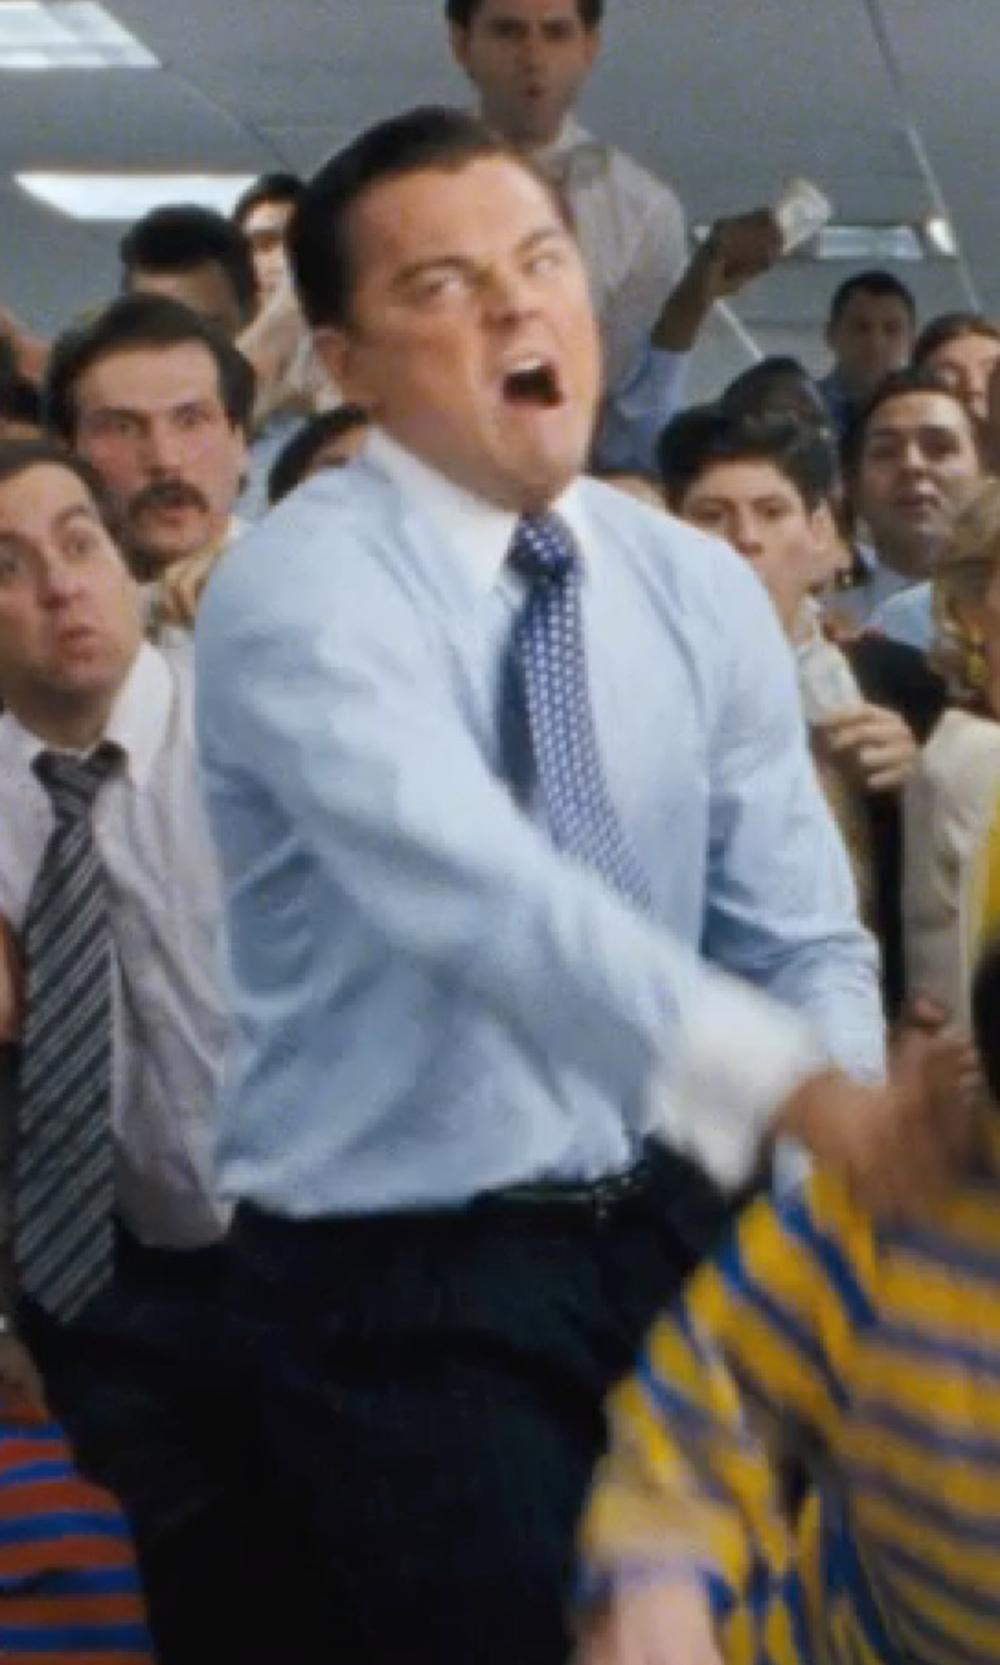 Leonardo DiCaprio with MICHAEL BASTIAN Striped Contrast Collar Dress Shirt in The Wolf of Wall Street